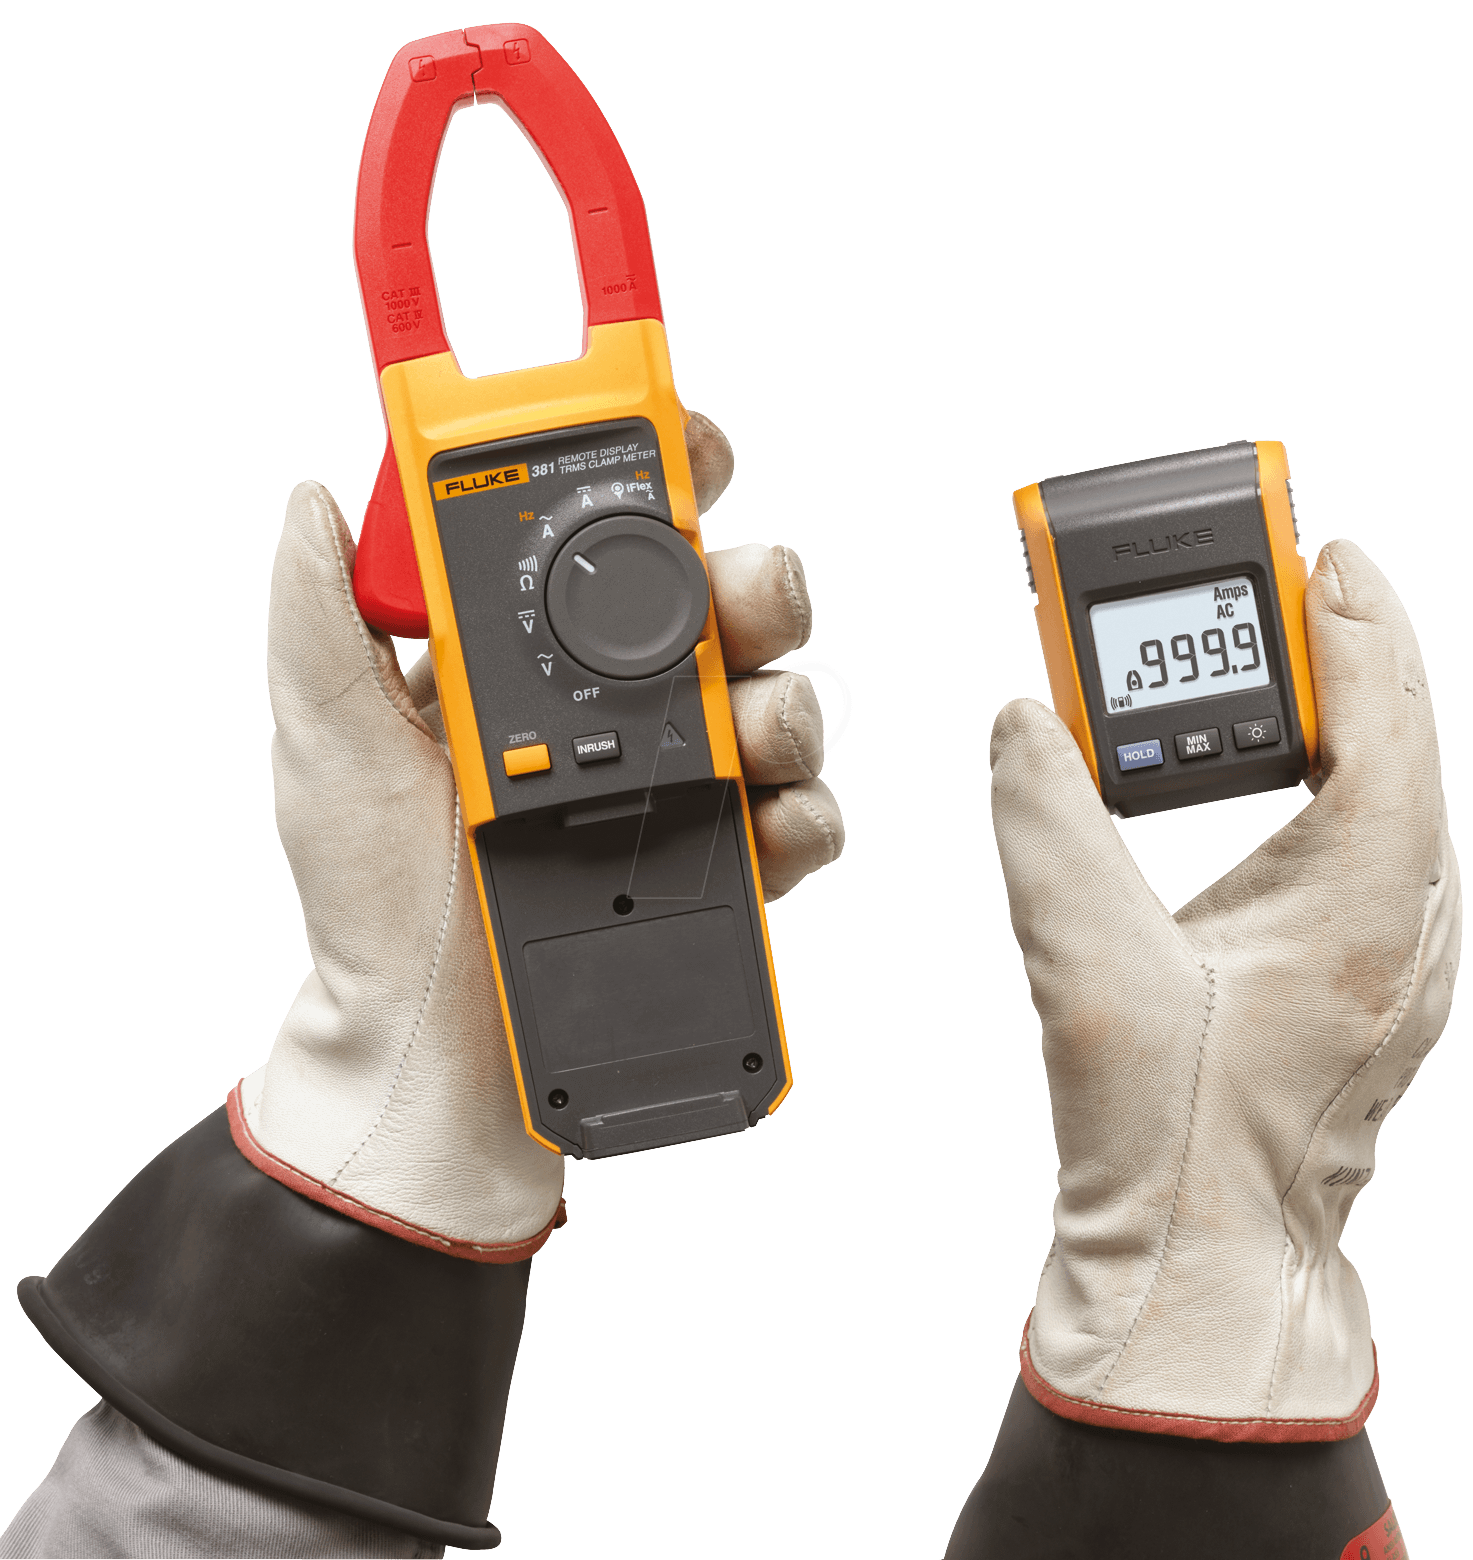 Fluke Meters Clamp On Sale : Fluke trms clamp meter with removable display at